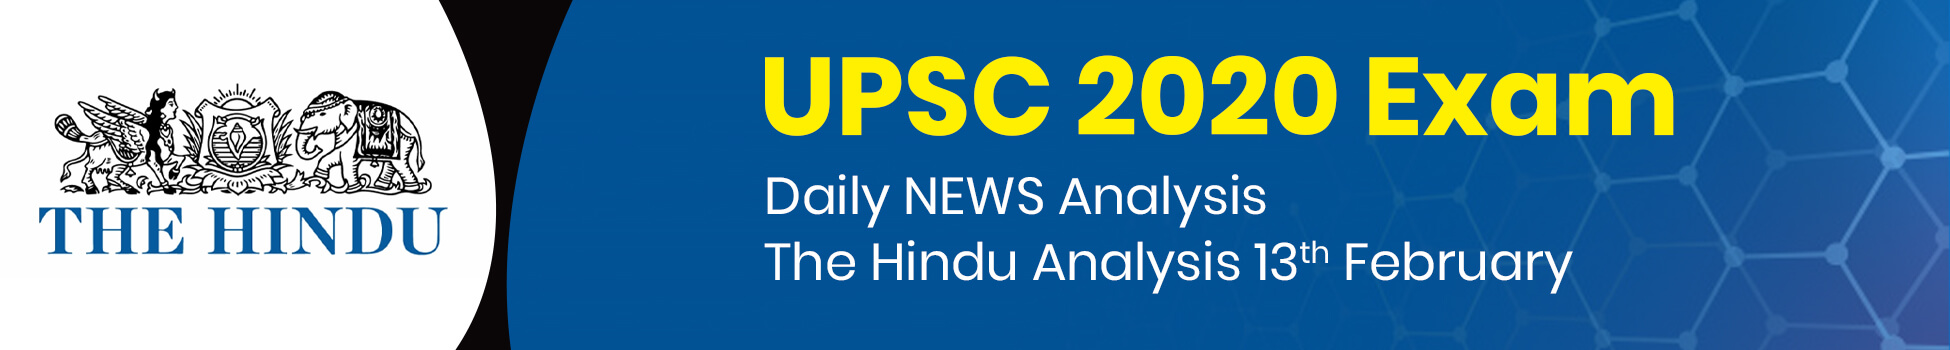 Daily NEWS Analysis 13th February For UPSC 2020